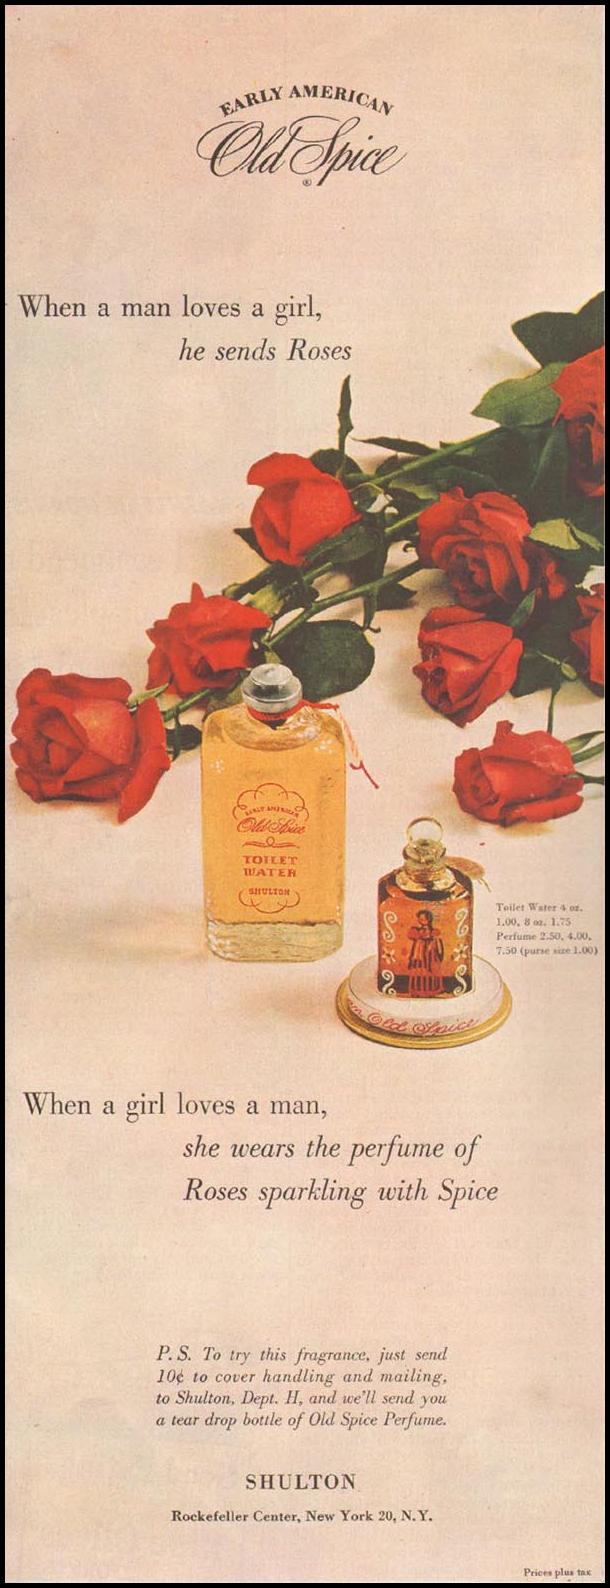 OLD SPICE PERFUME LADIES' HOME JOURNAL 07/01/1949 p. 146